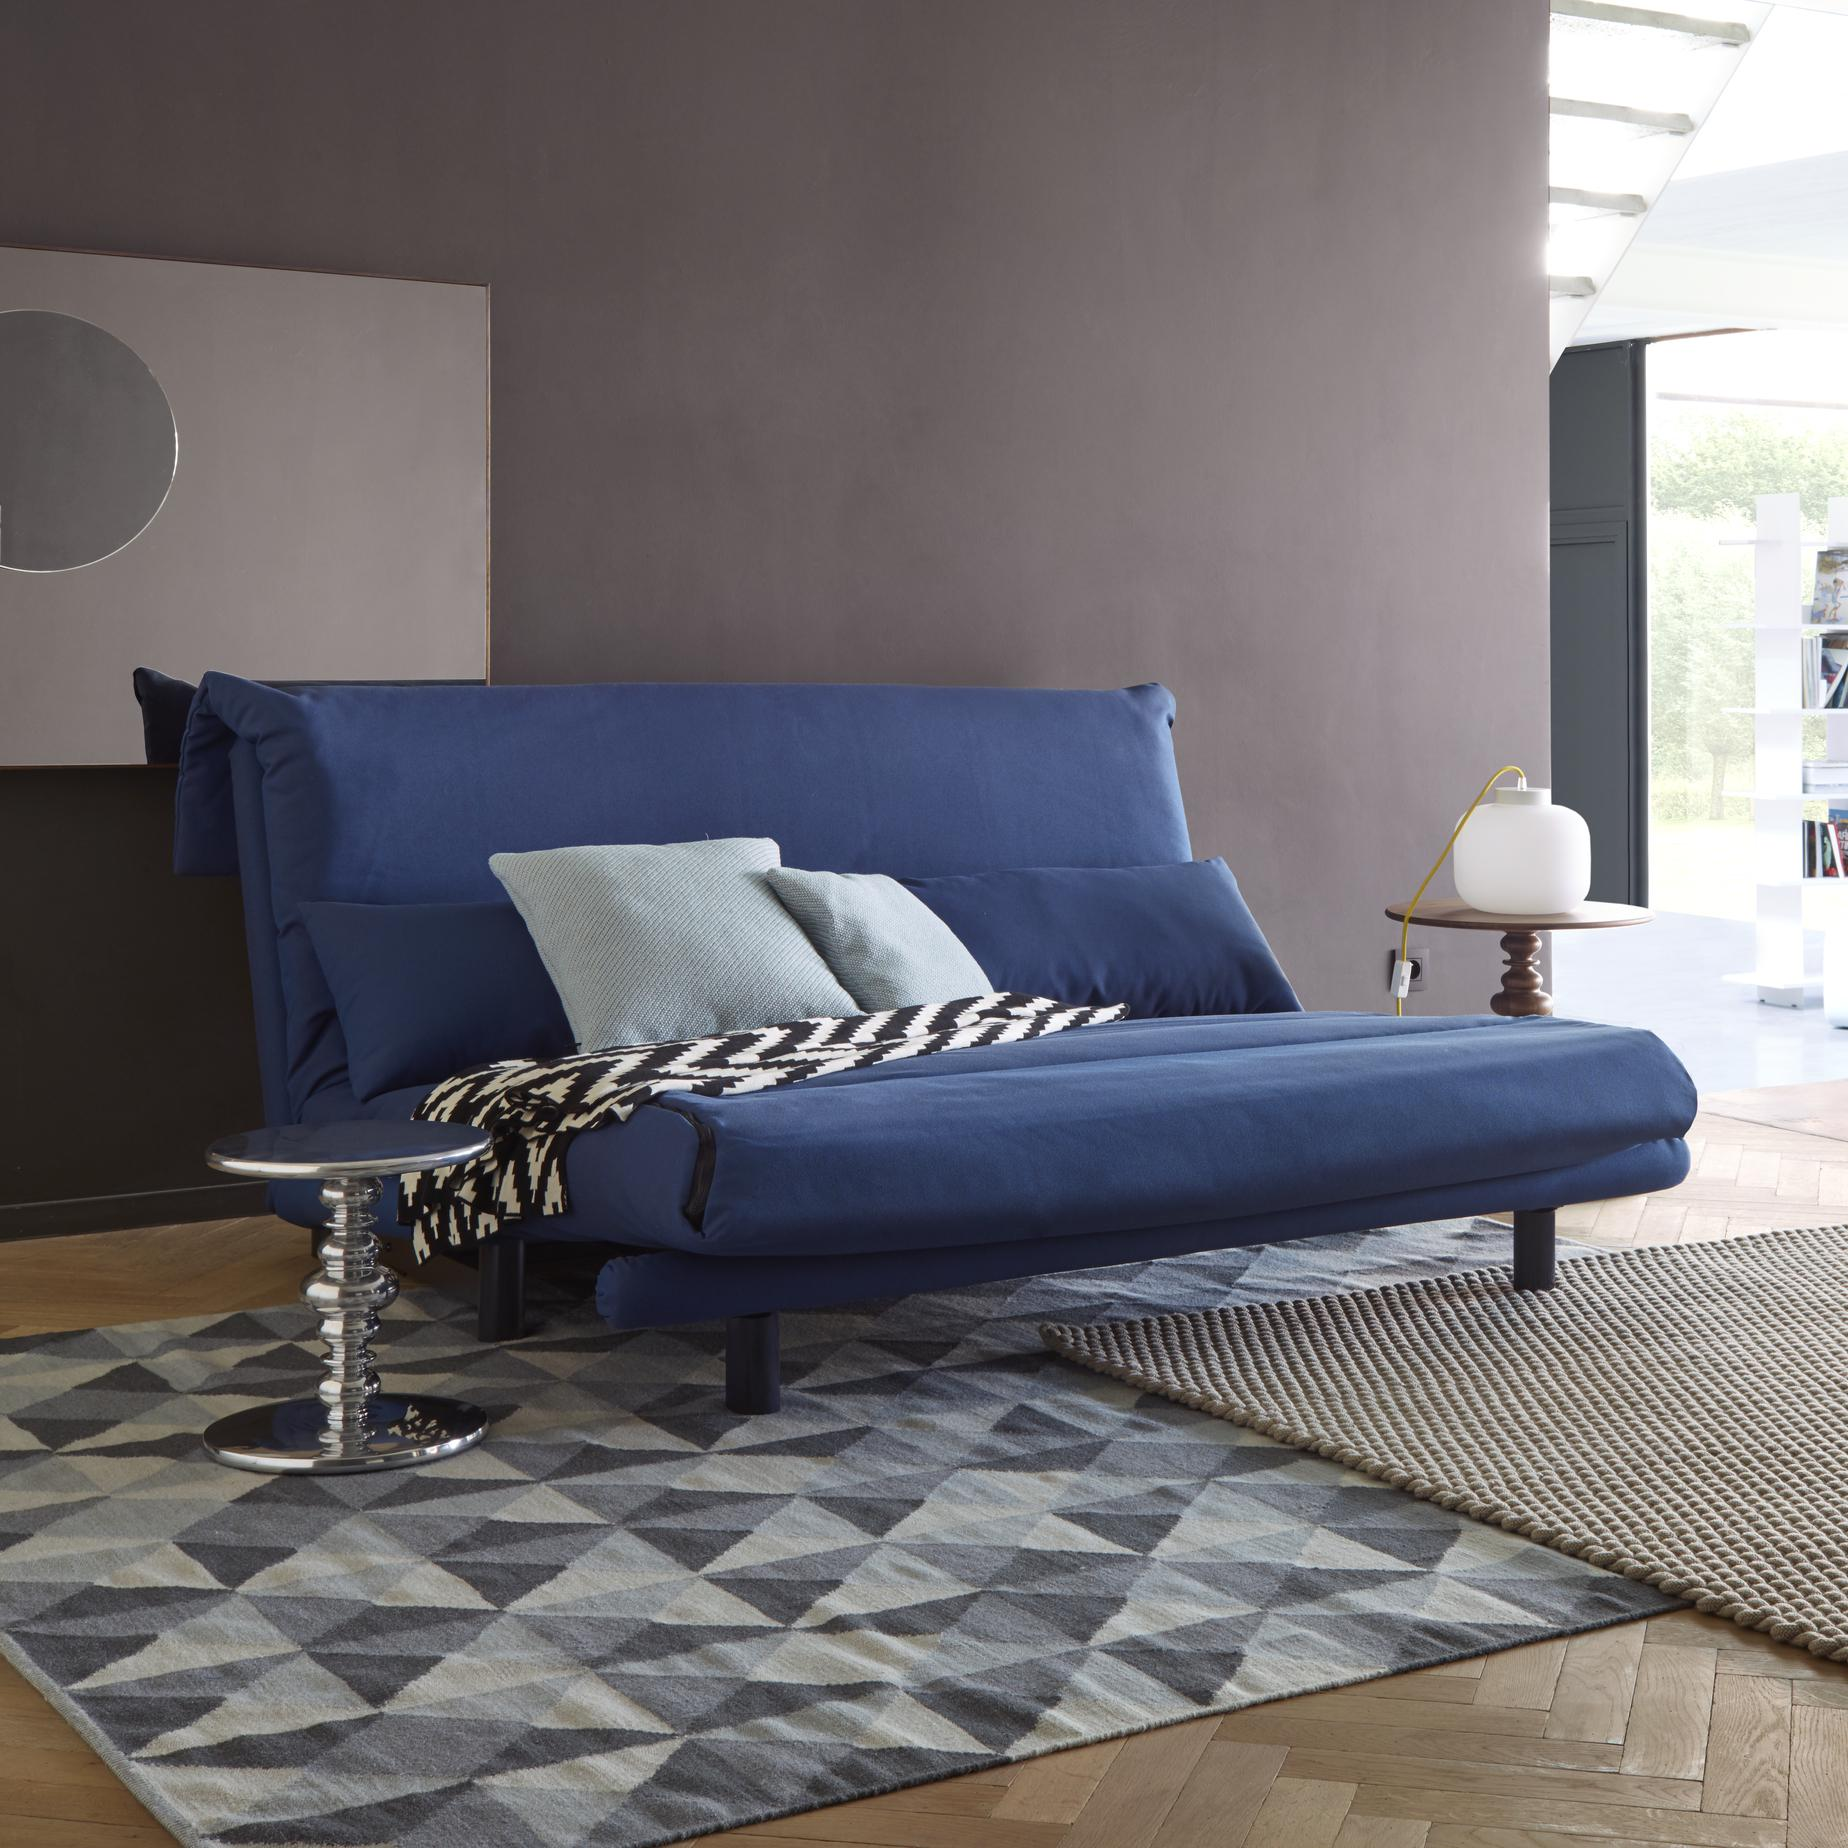 multy sofa beds from designer claude brisson ligne roset